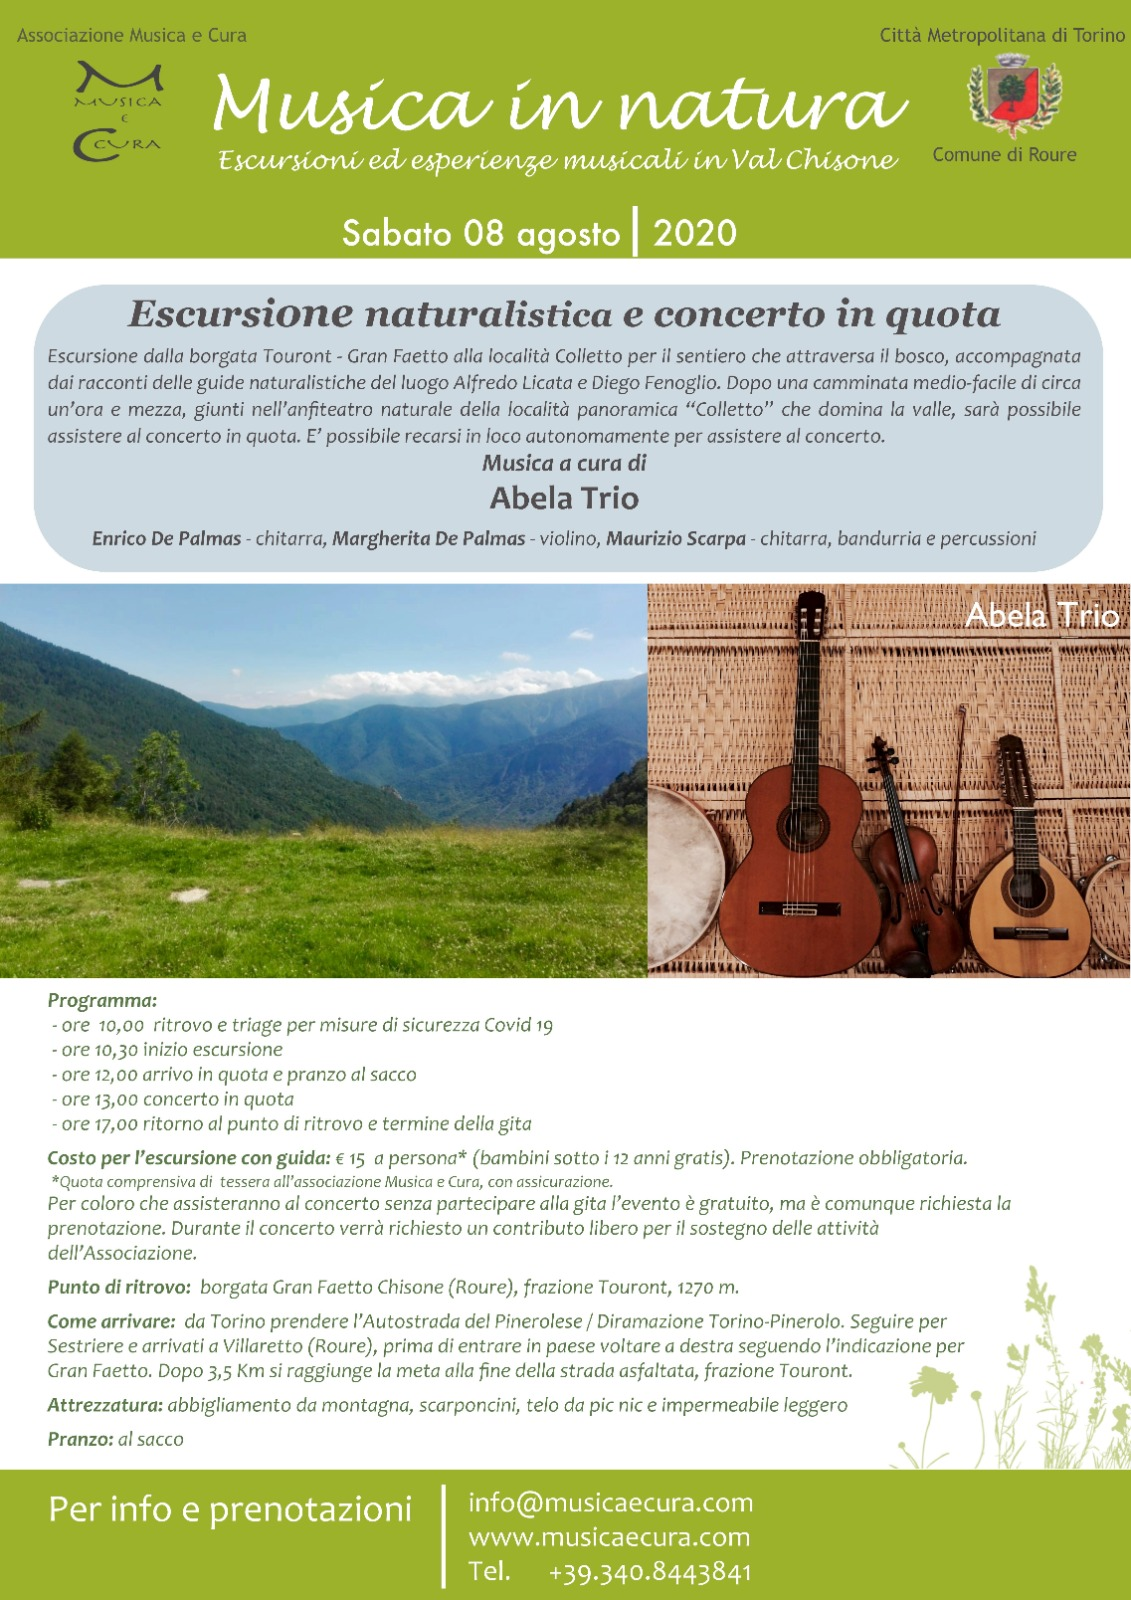 escursione naturalistica concerto in quota